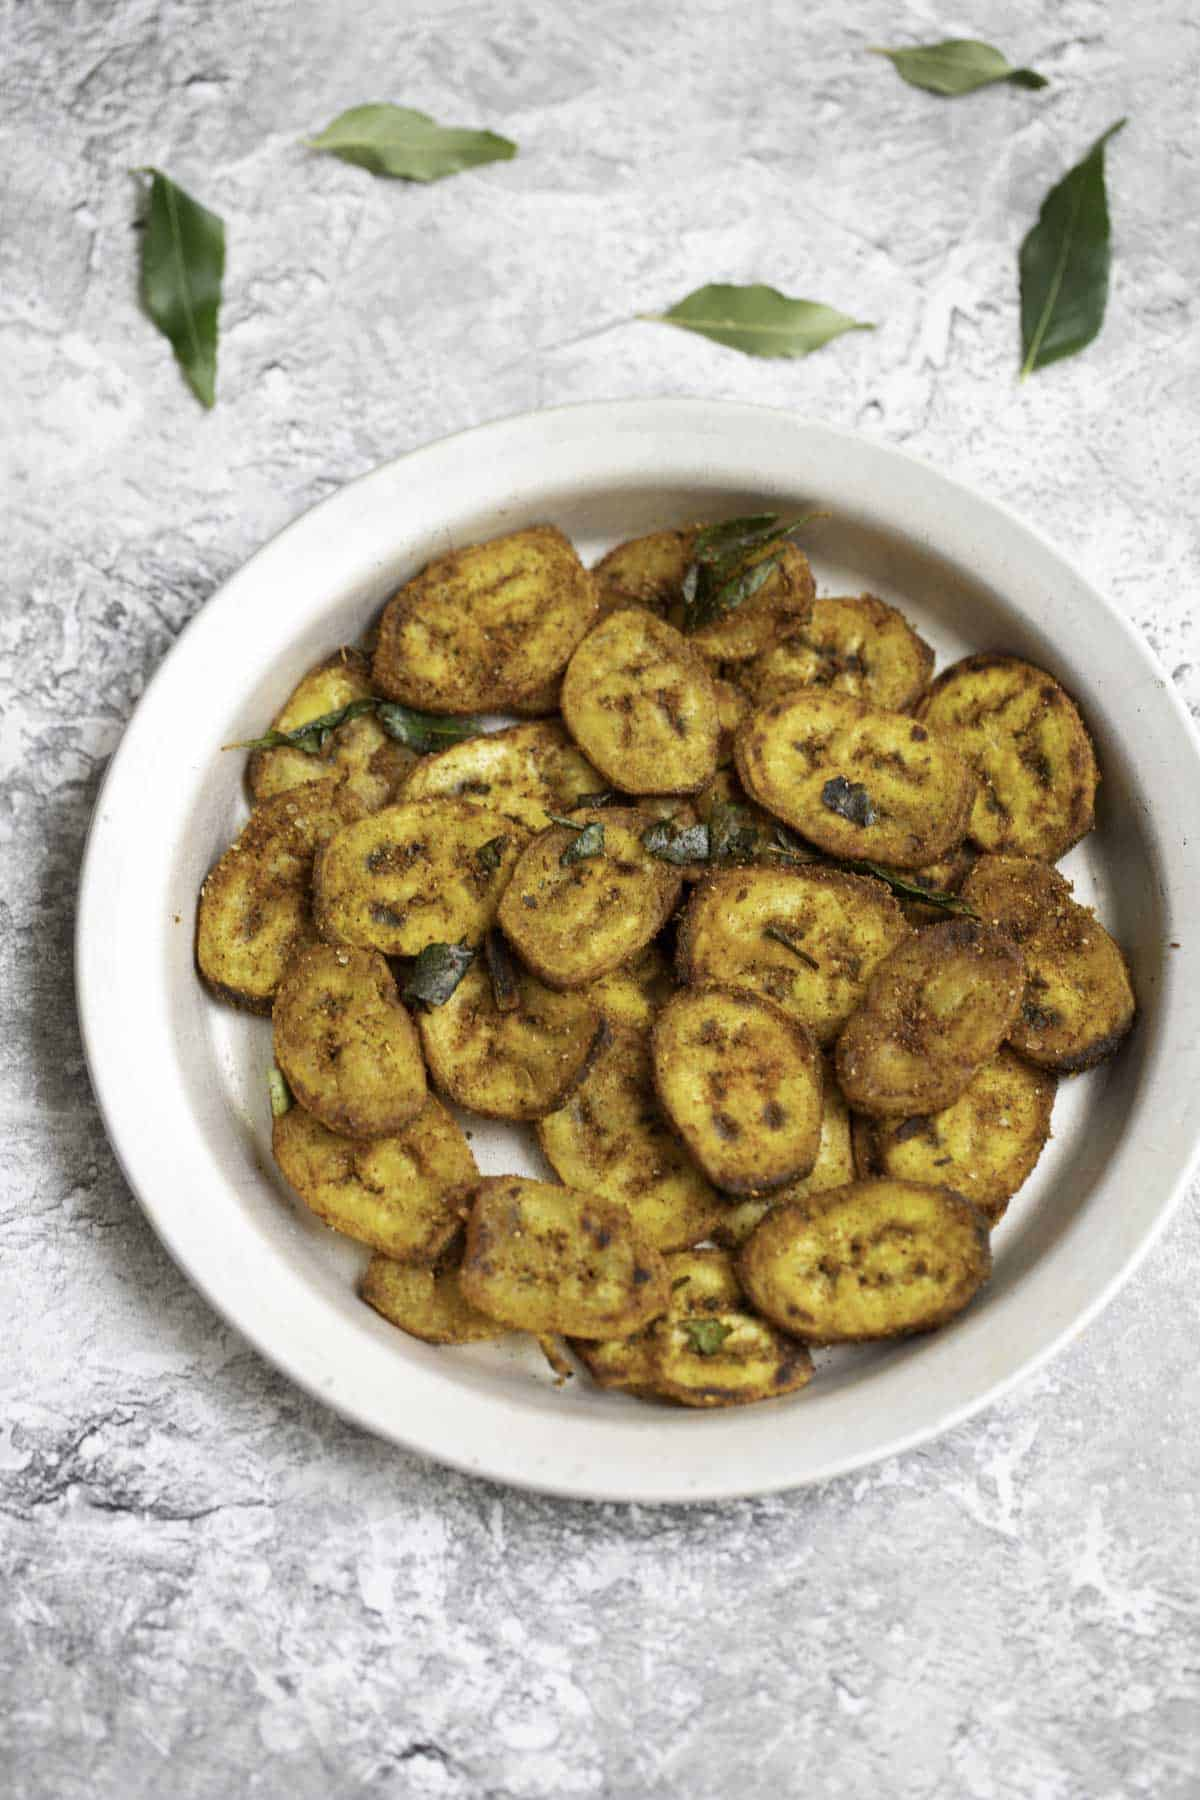 a plate of raw banana fry with curry leaves in the background for decor